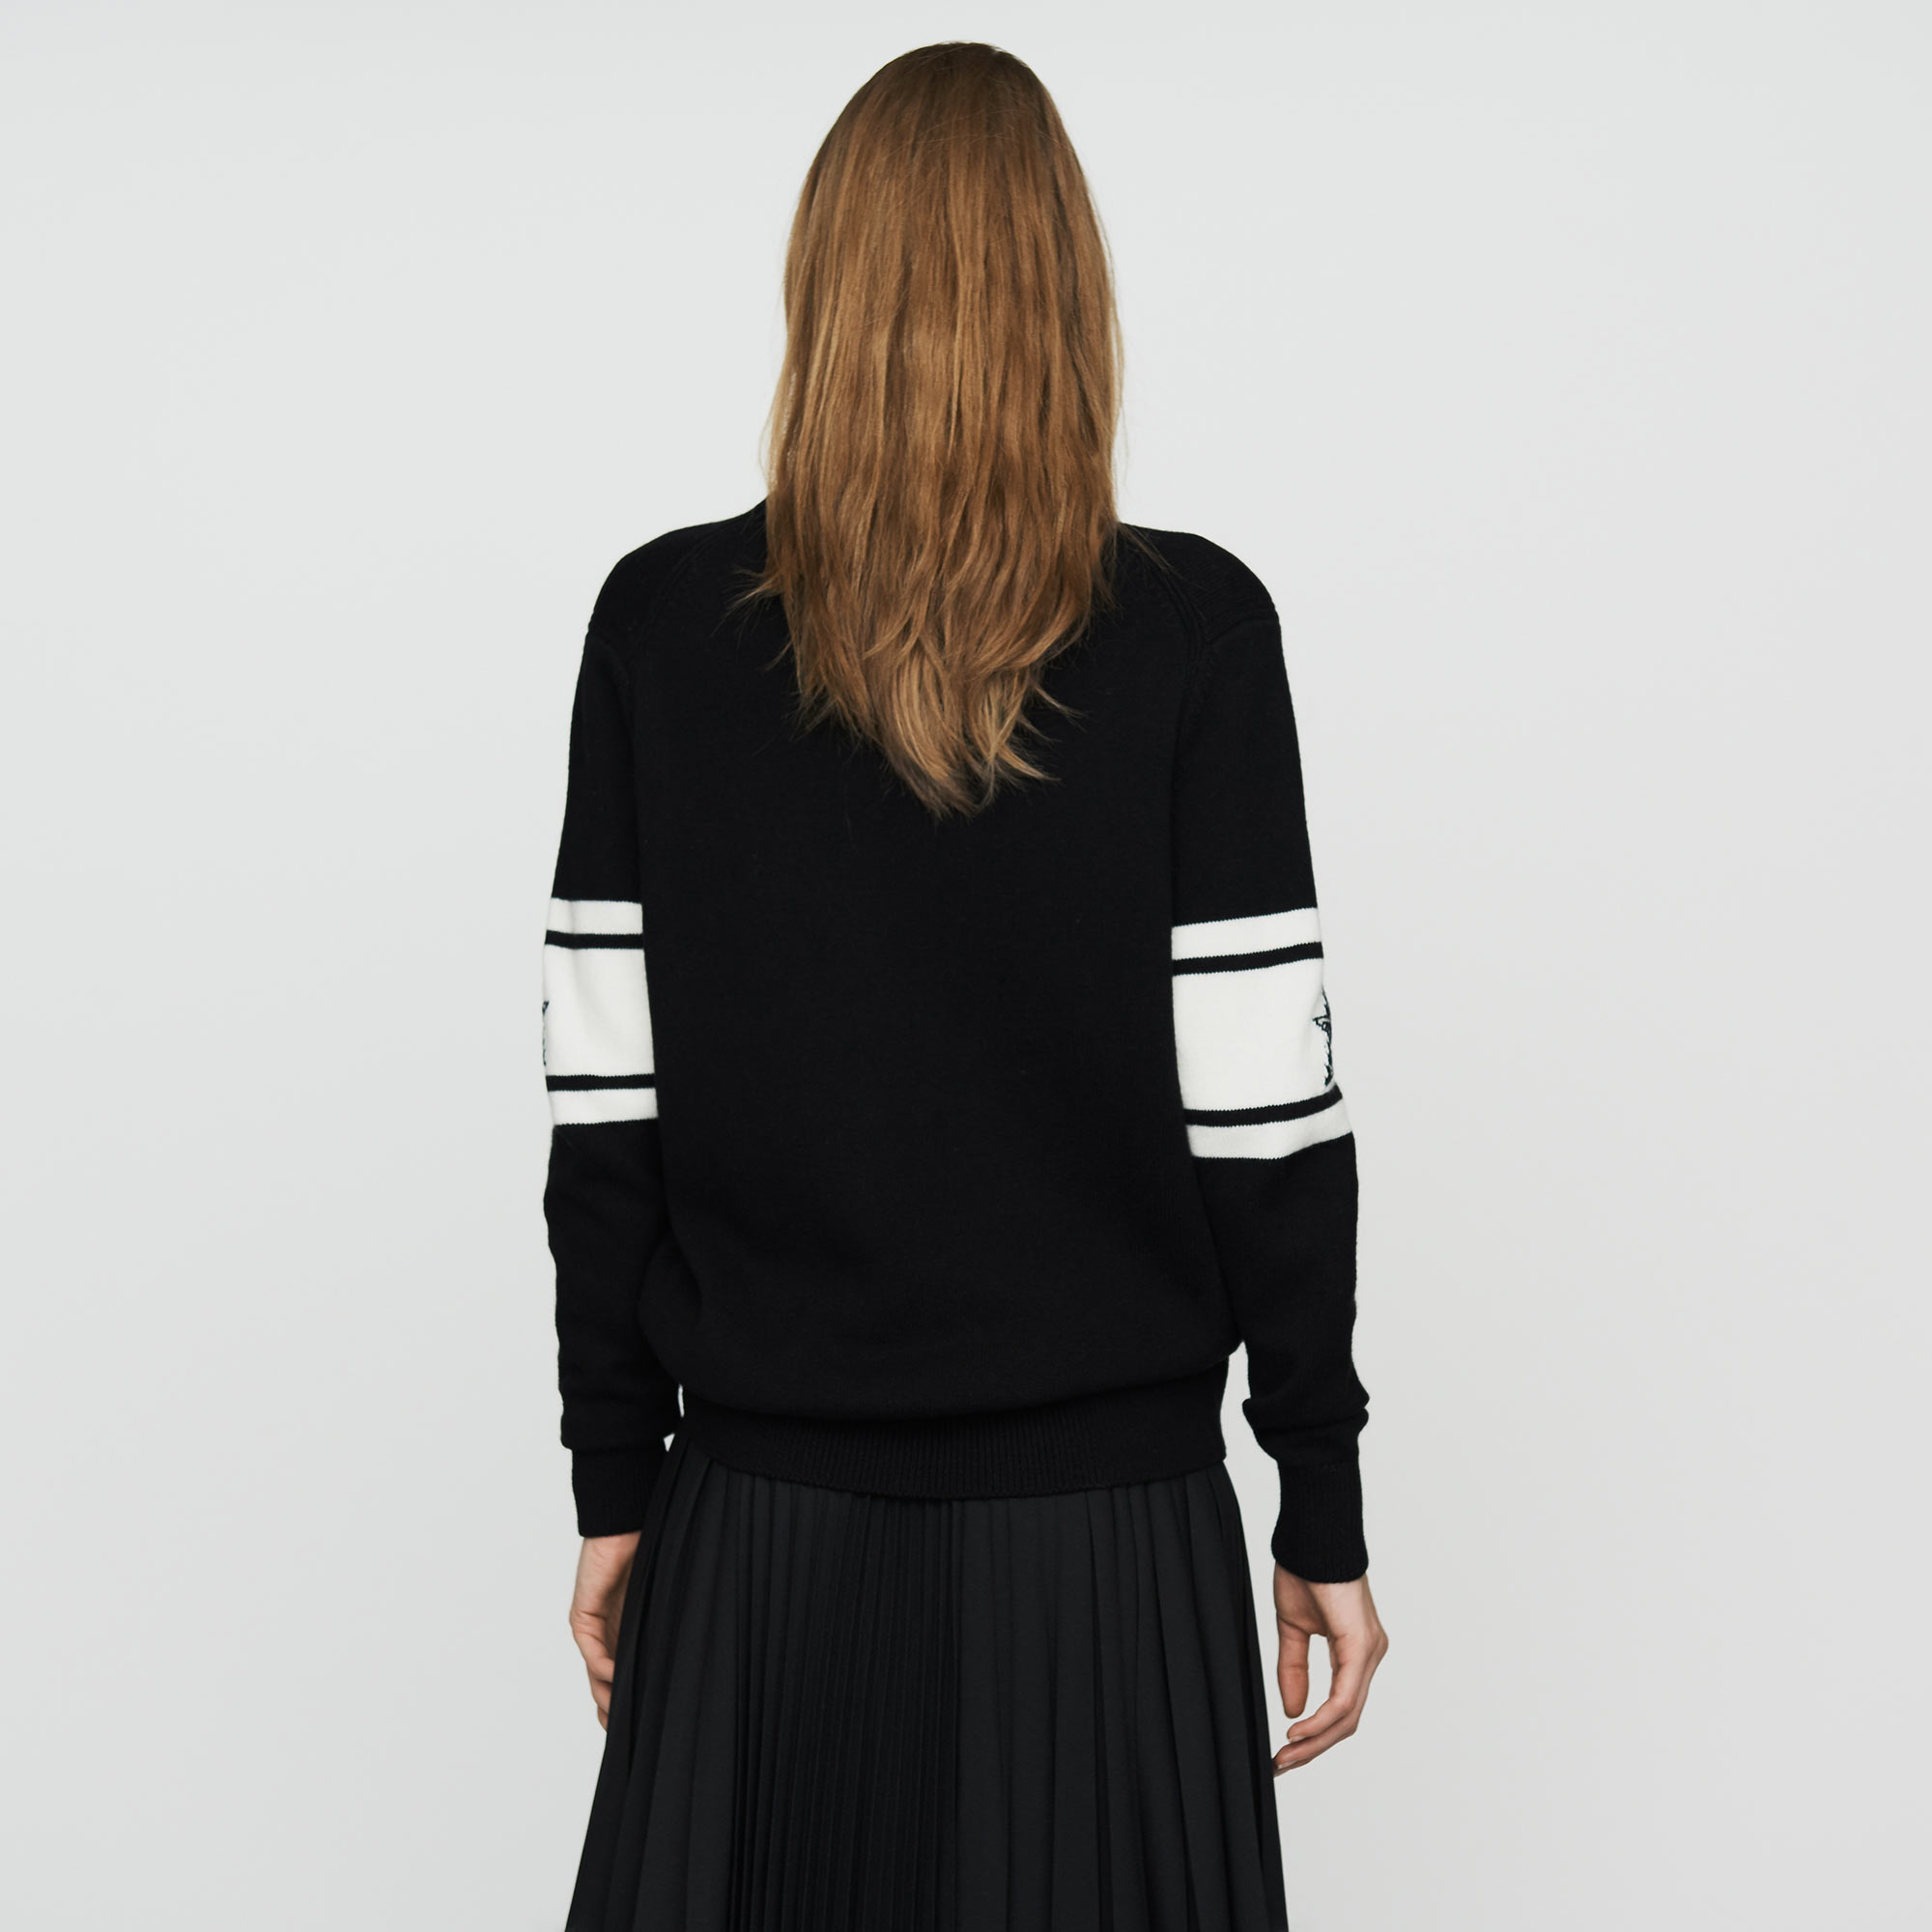 Oversize sweater in bicolor knit with stars - Black